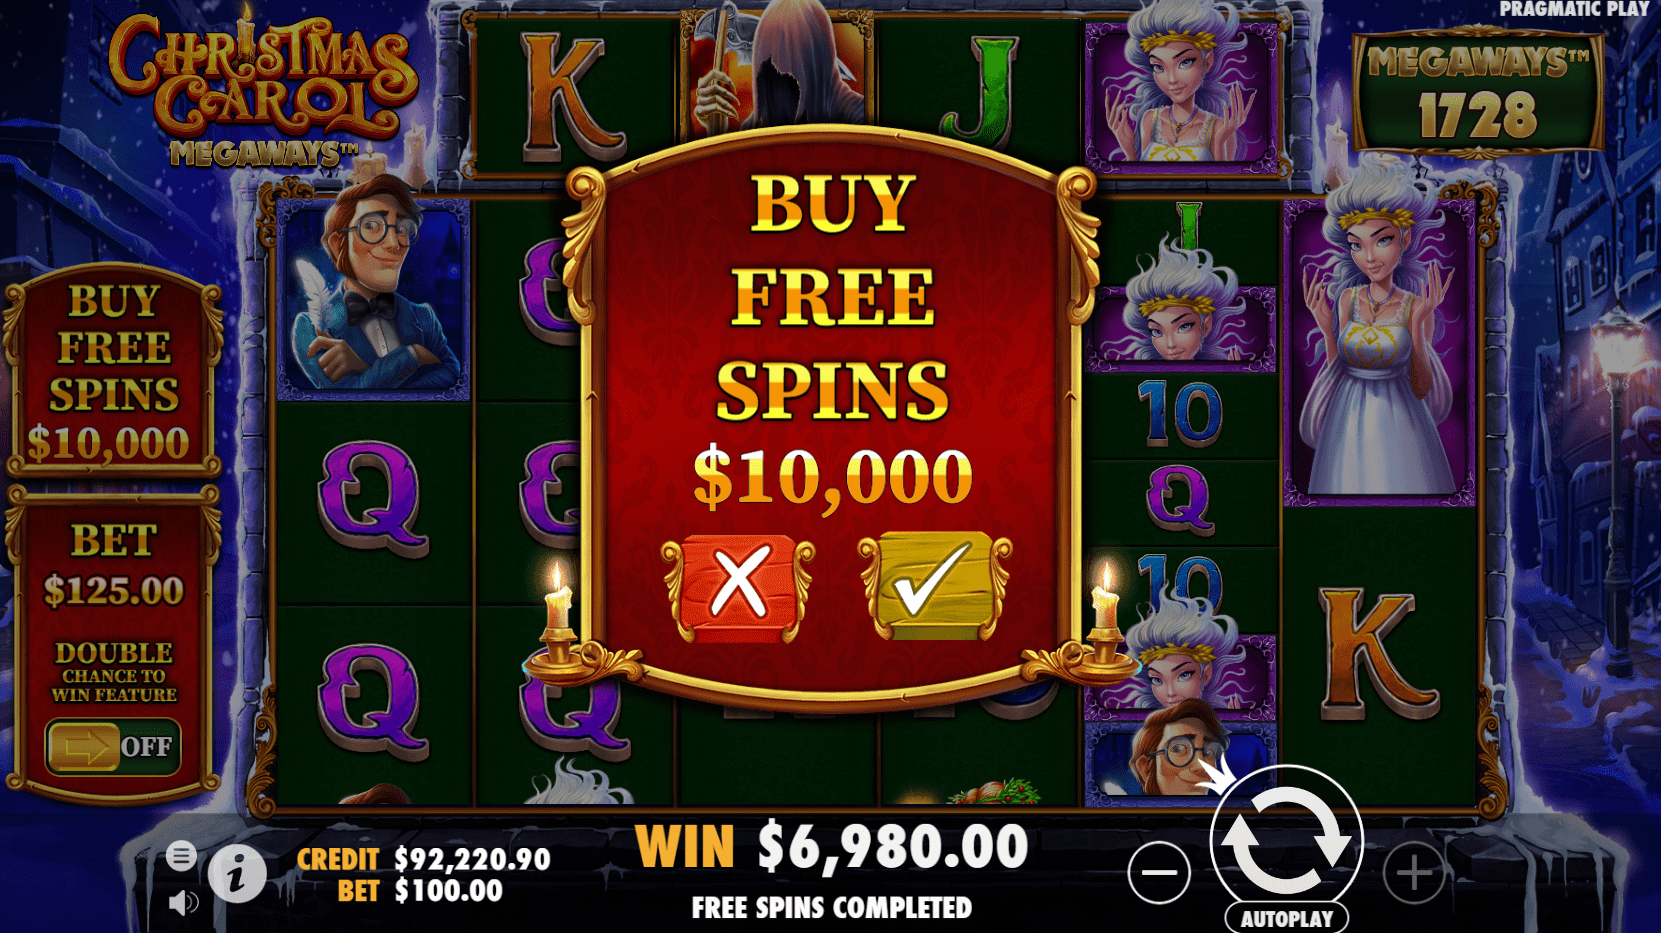 Christmas Carol Megaways video slot buy free spins